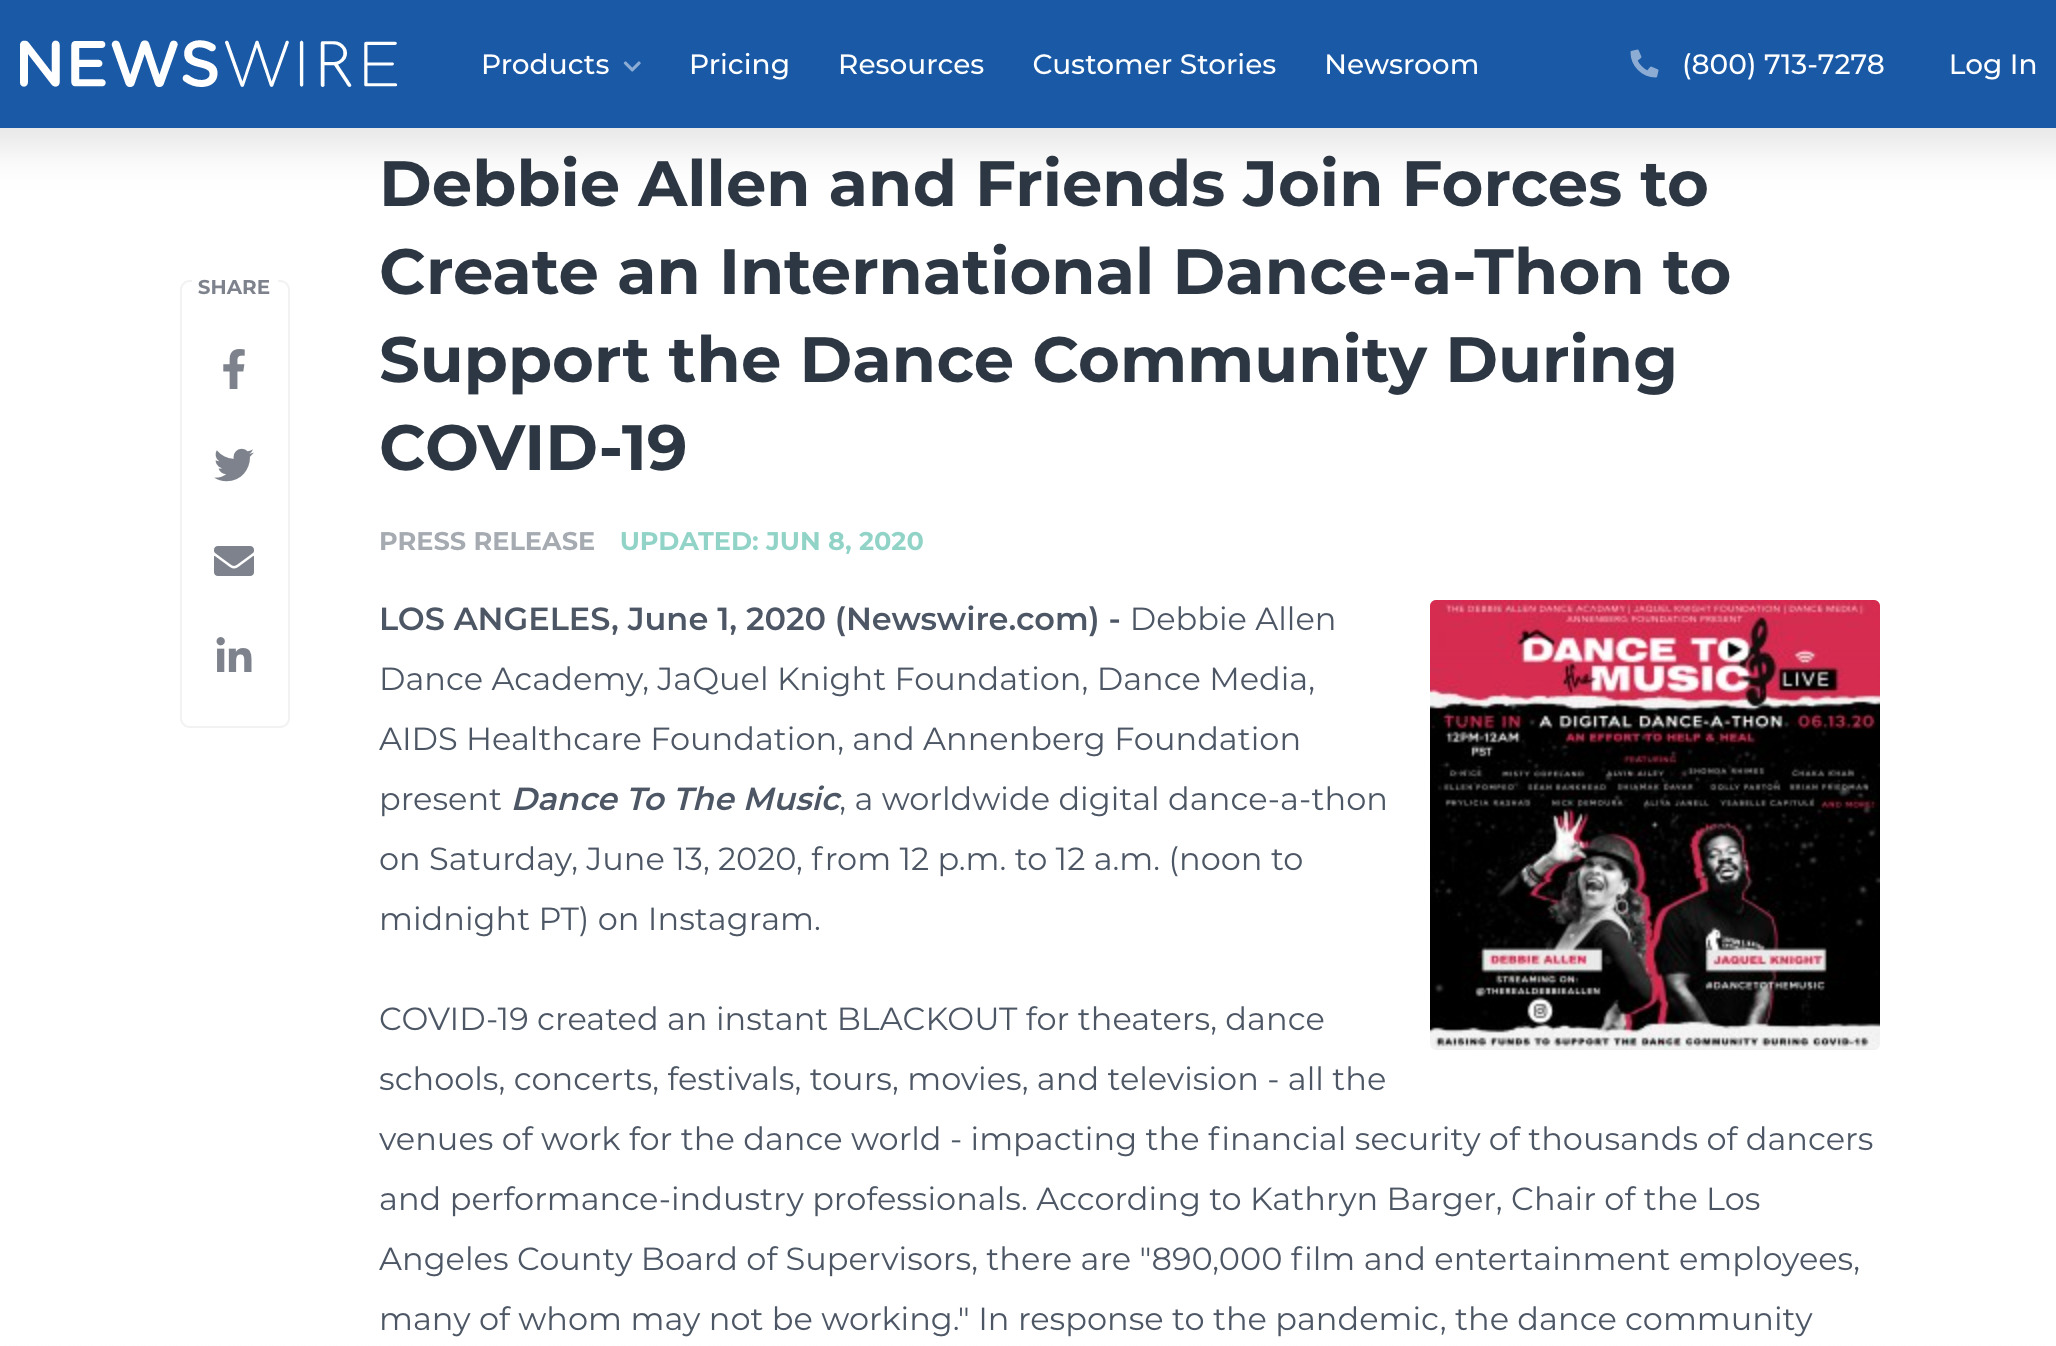 Debbie Allen and friends join forces to create an International Dance-a-Thon to support the dance community during COVID-19